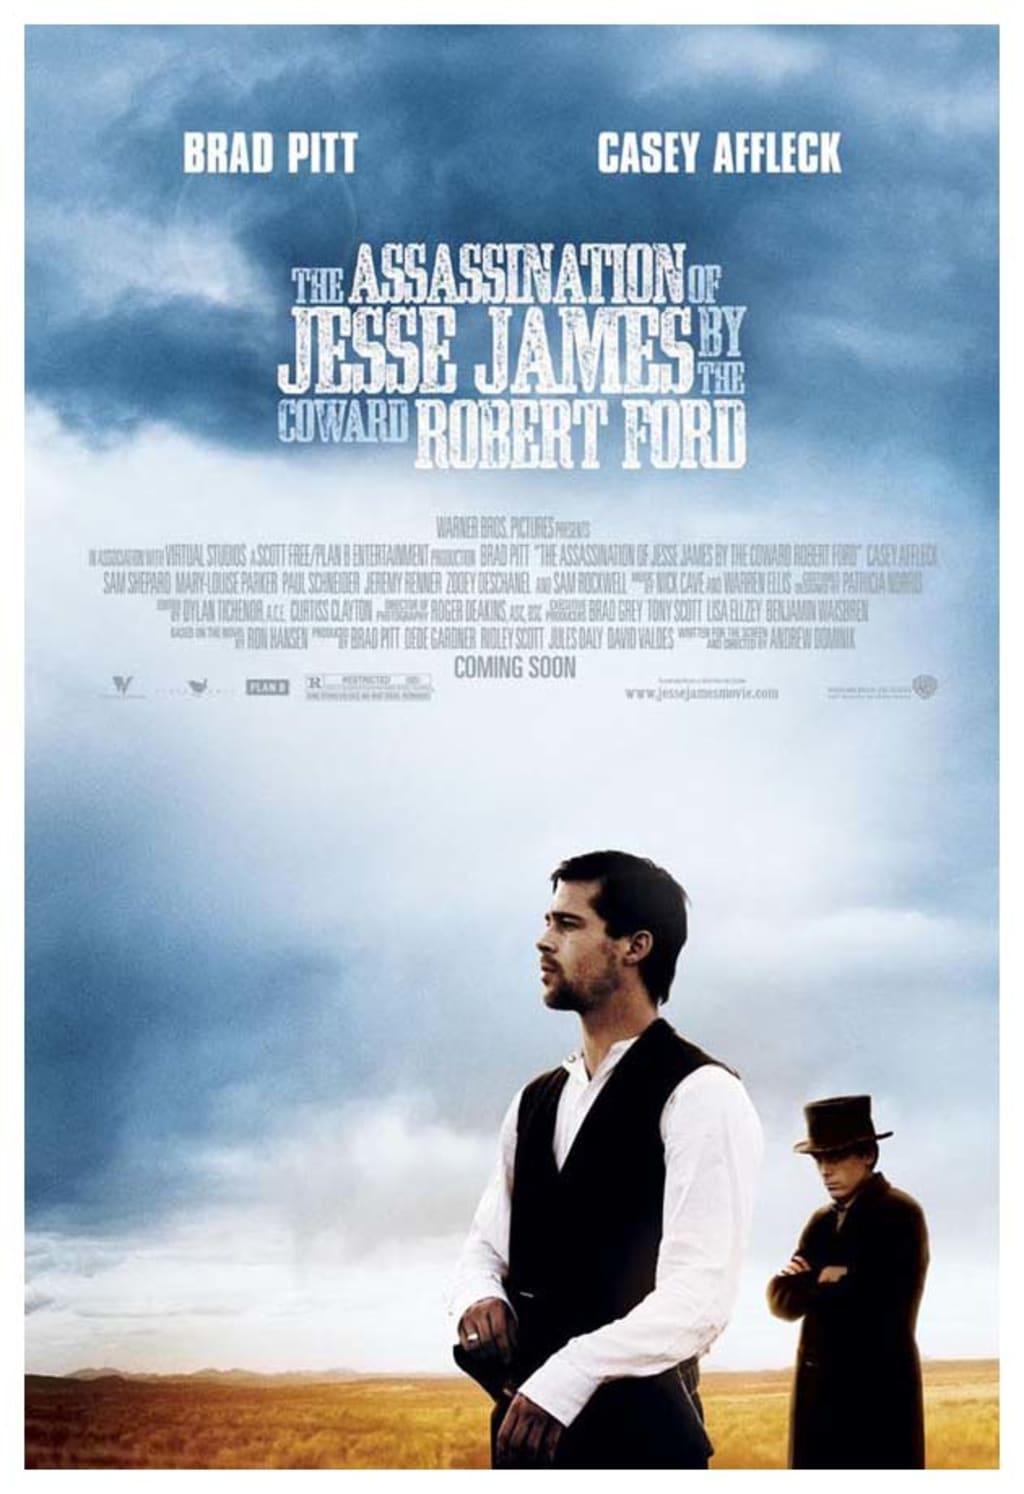 A Filmmaker's Review: 'The Assassination of Jesse James by the Coward Robert Ford.' (2007)